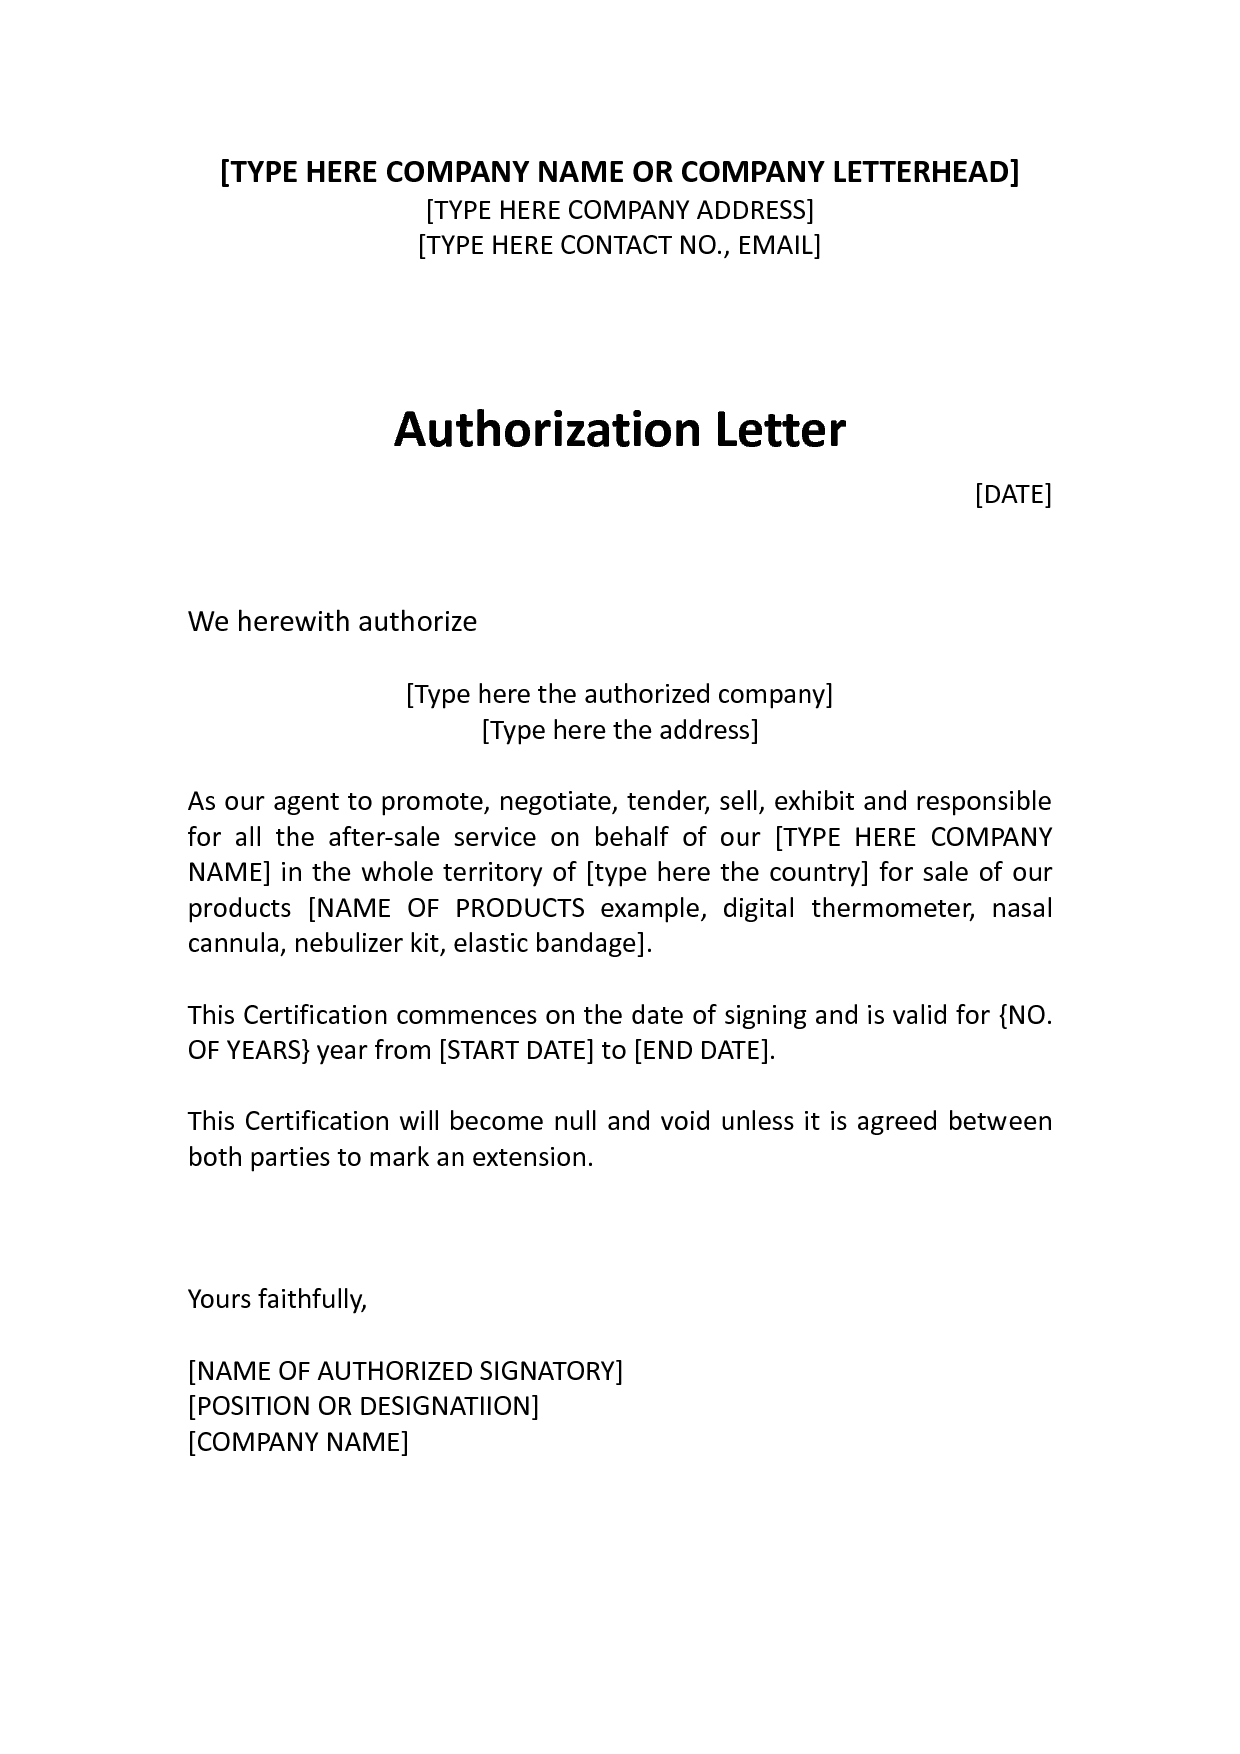 Parent Permission Letter Template - Authorization Distributor Letter Sample Distributor Dealer